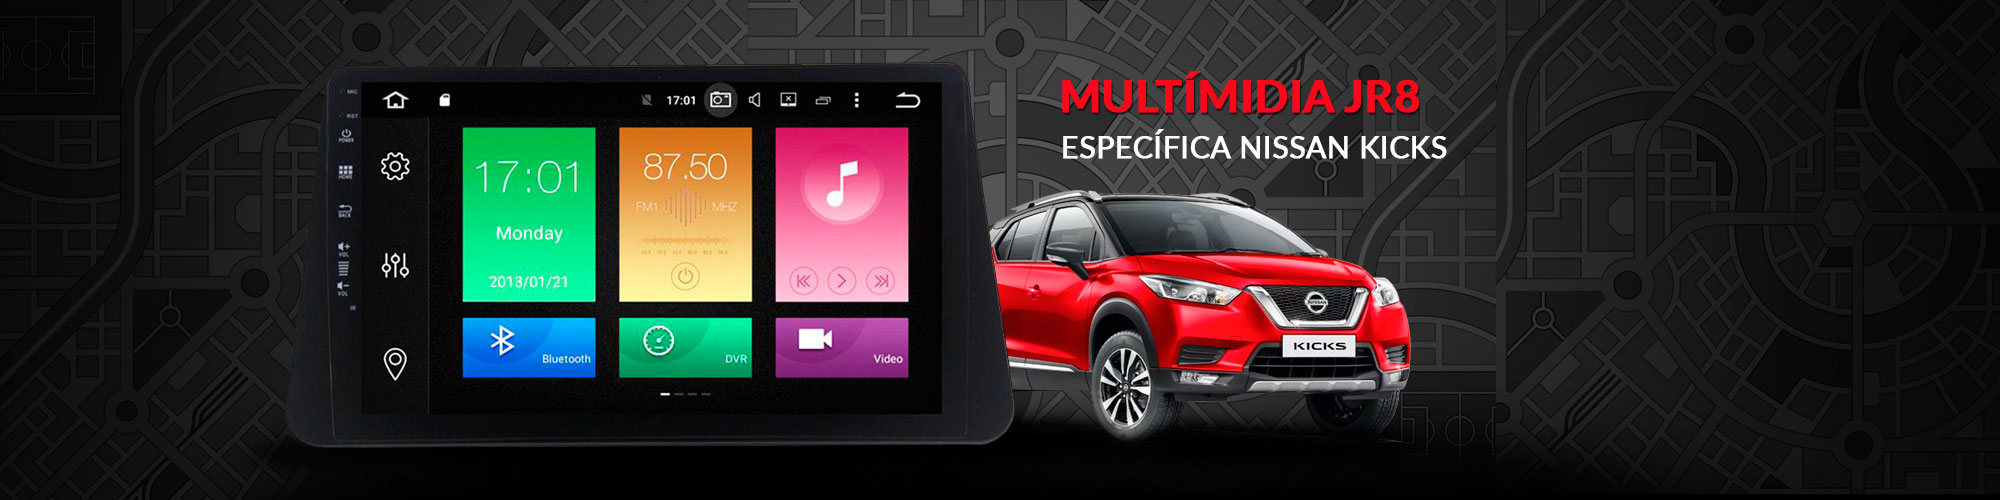 DRT.4. MULTIMÍDIAS AUTOMOTIVAS JR8 NISSAN KICKS